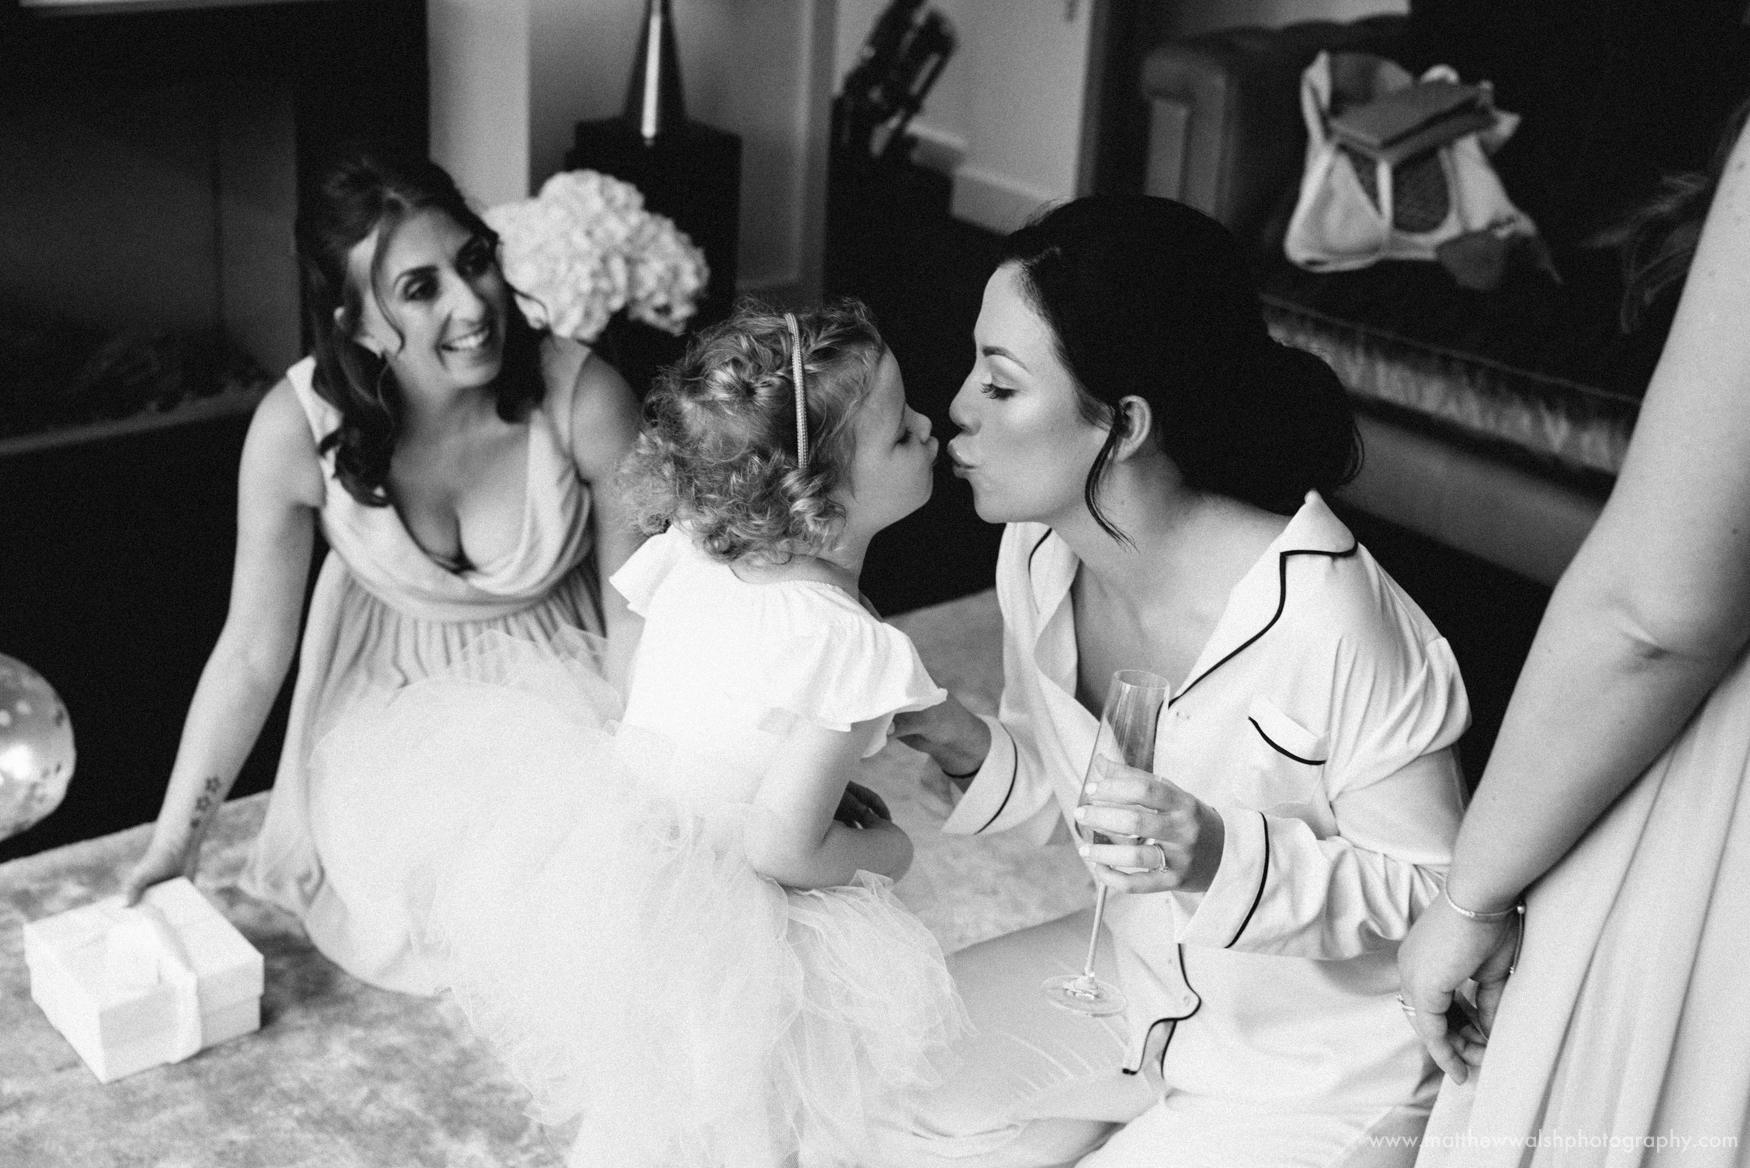 Another intimate moment as the bride and little daughter prepare for the day ahead